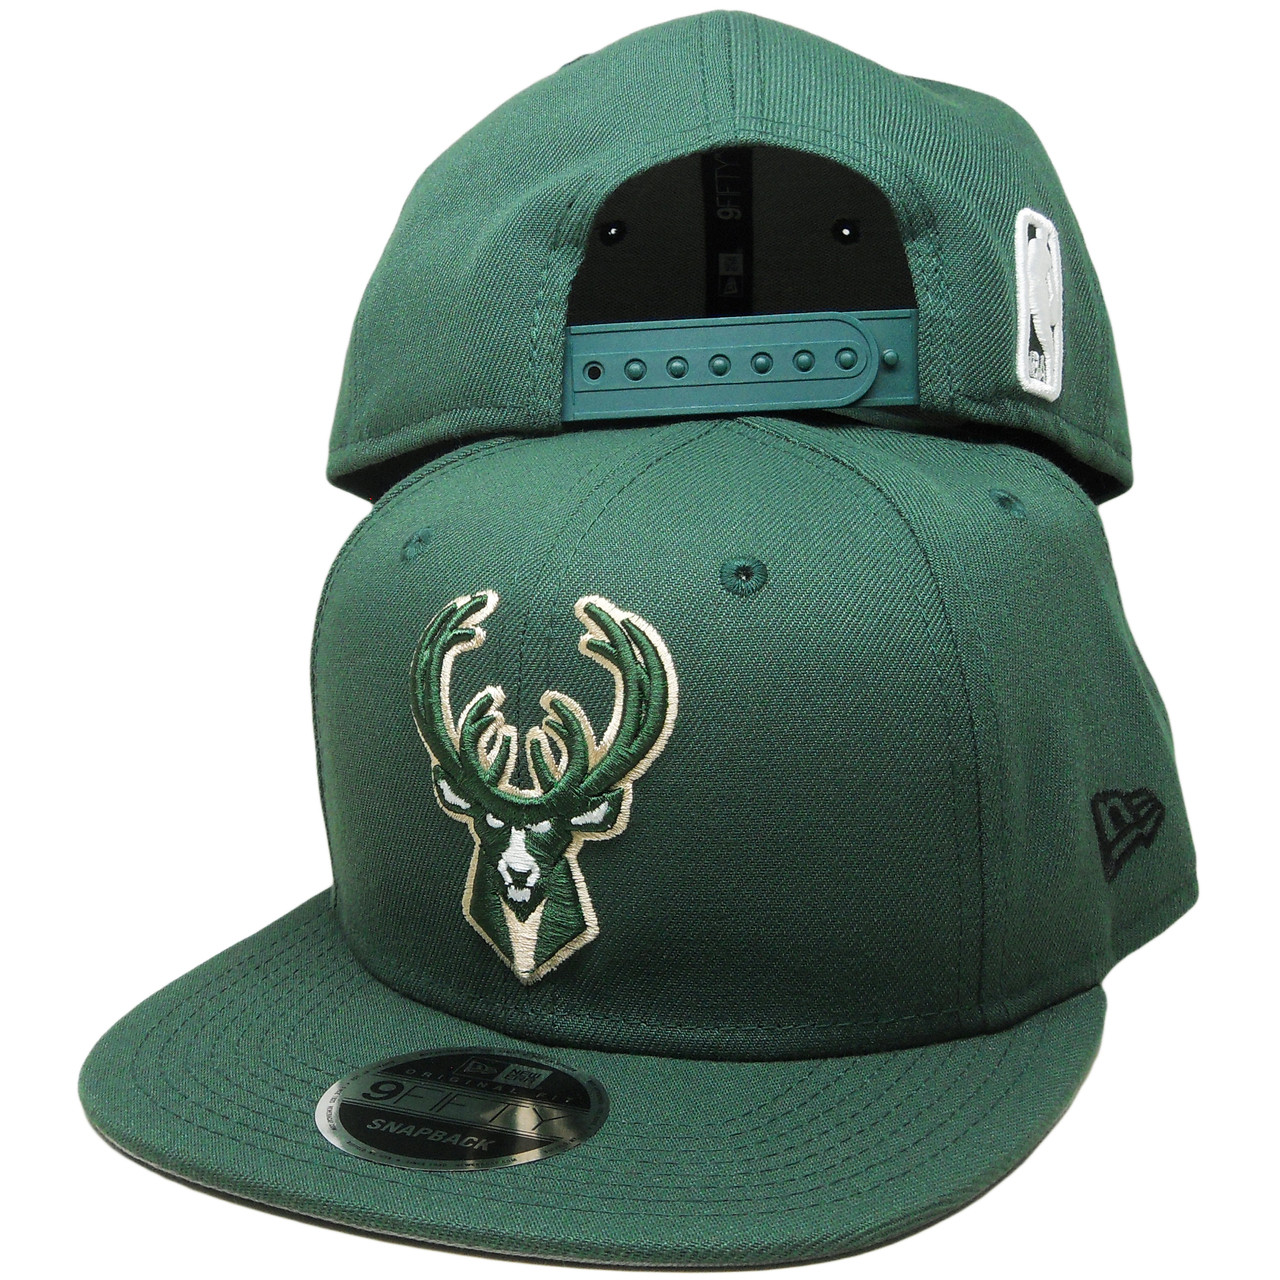 a3382045ad3bd6 Milwaukee Bucks New Era 9Fifty OF Snapback Hat - Green, Beige ...